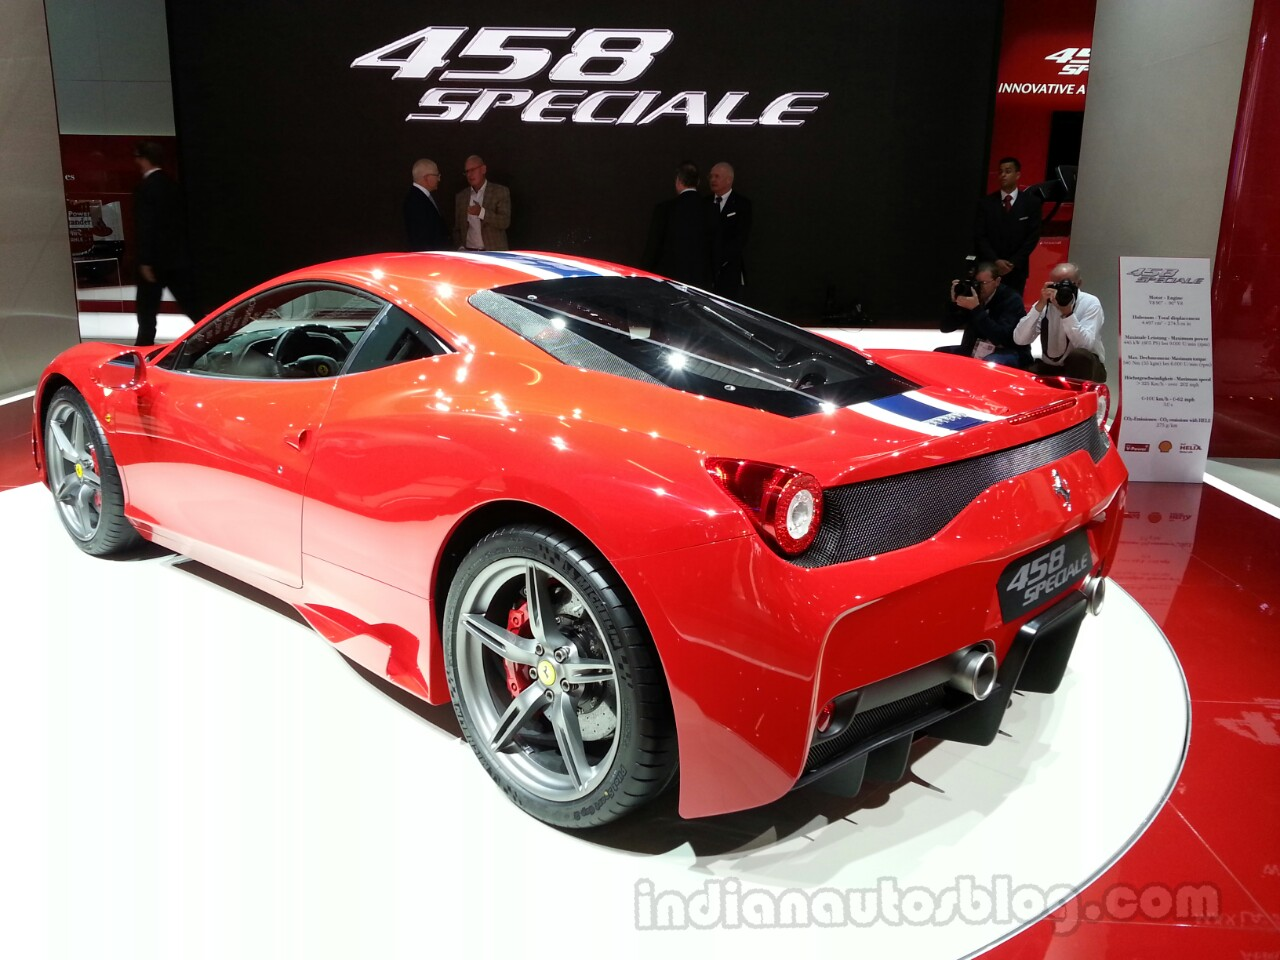 Ferrari 458 Speciale Rear Left